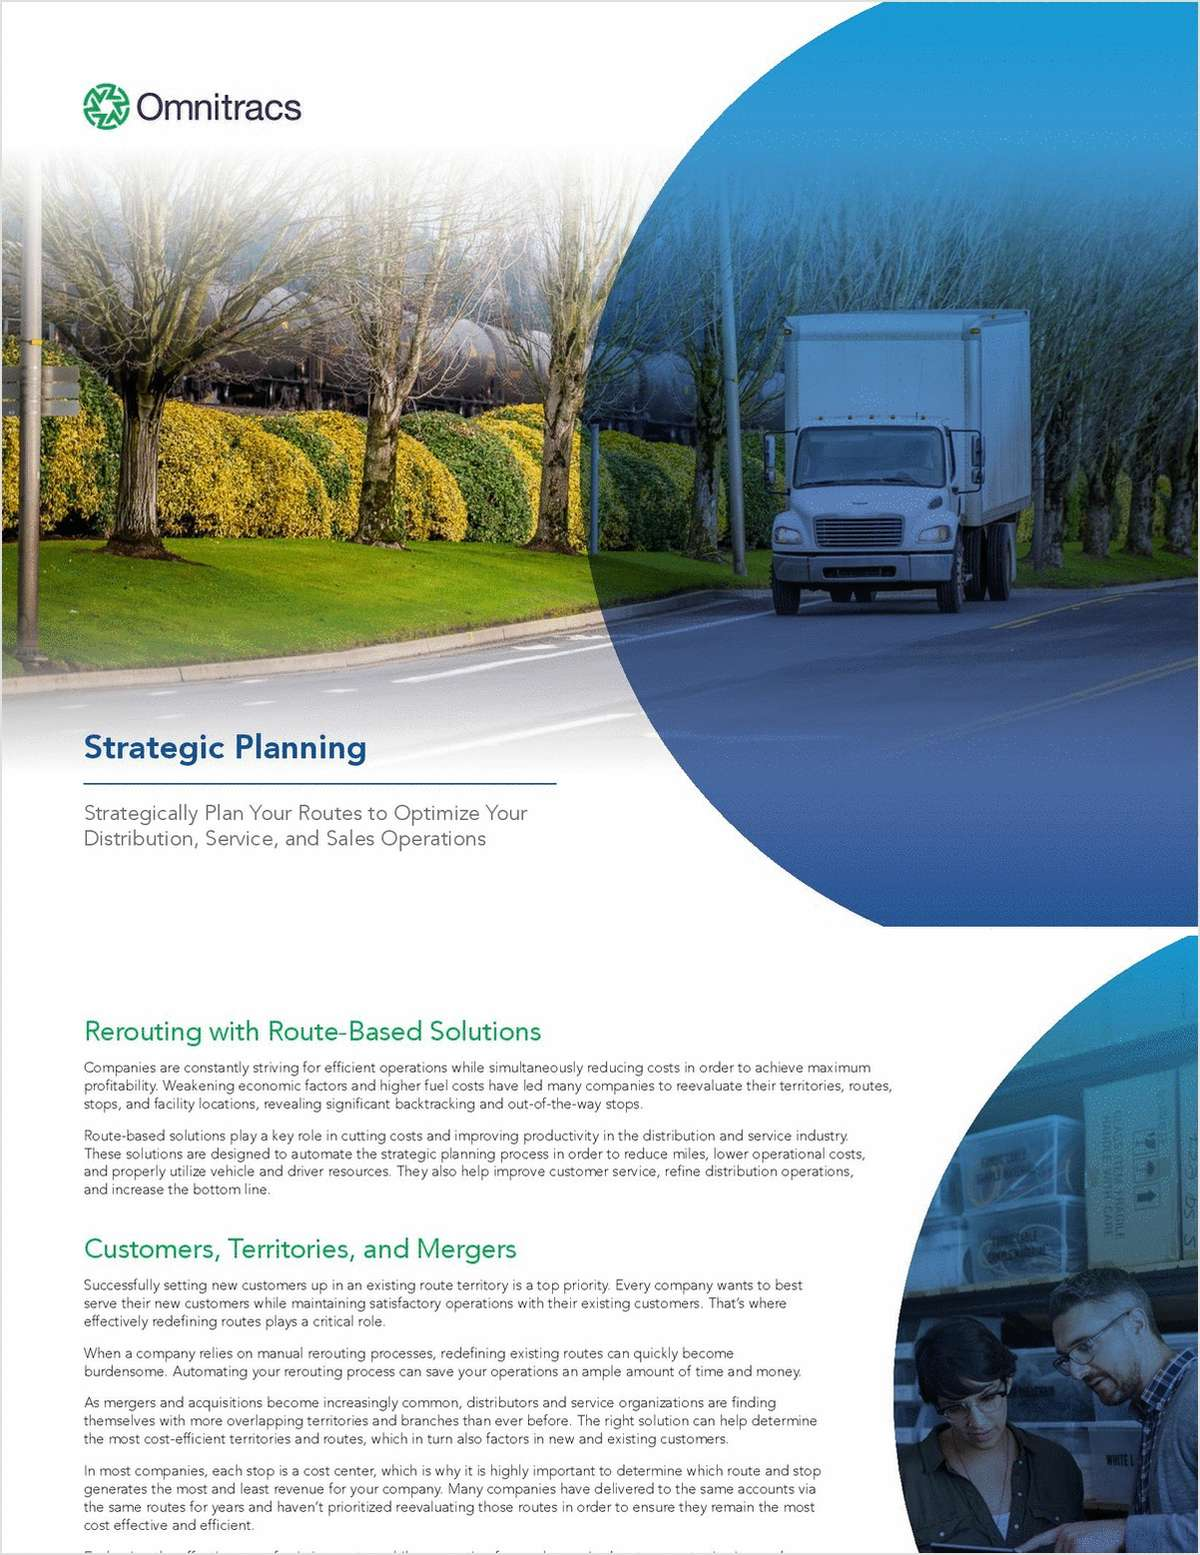 Strategic Planning: Strategically Plan Your Routes to Optimize Your Distribution, Sales, and Service Operations